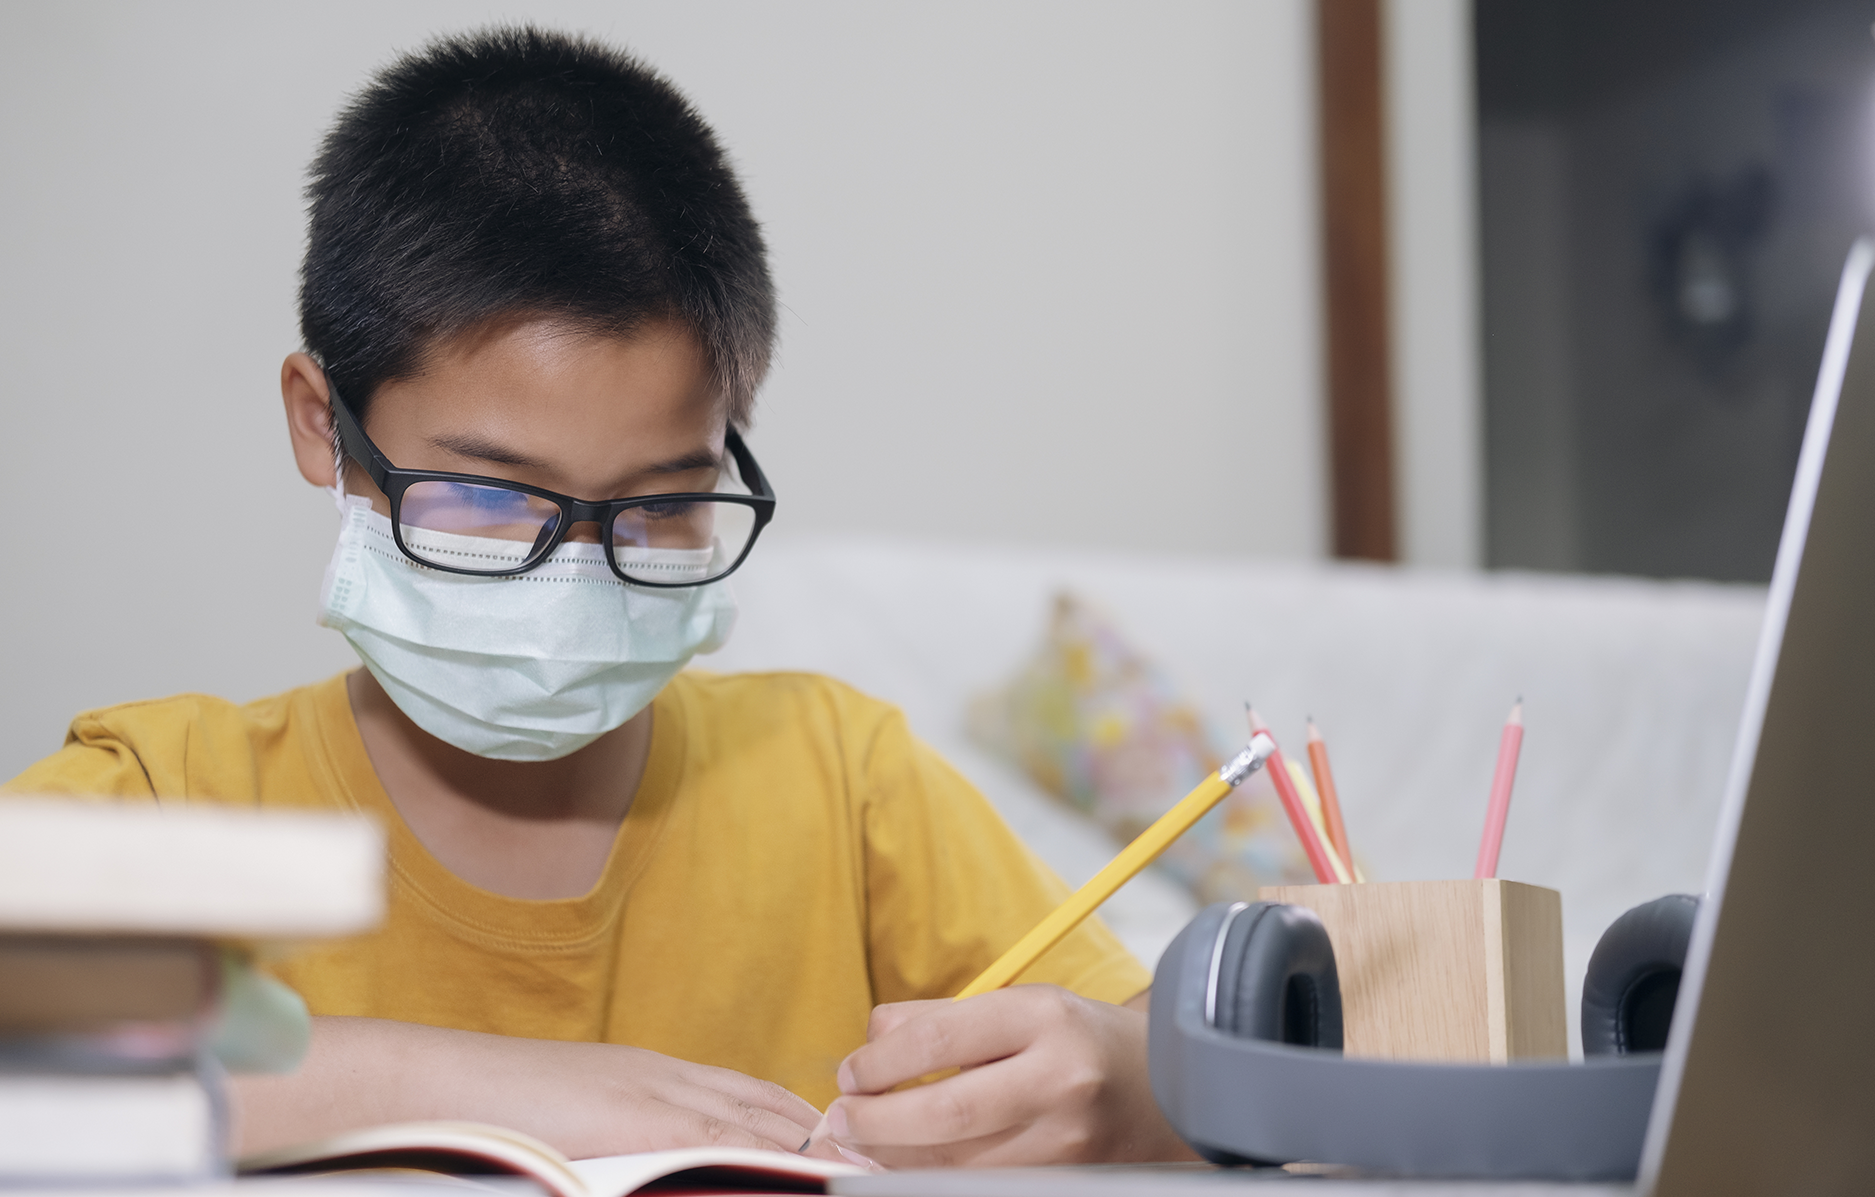 Child working at home